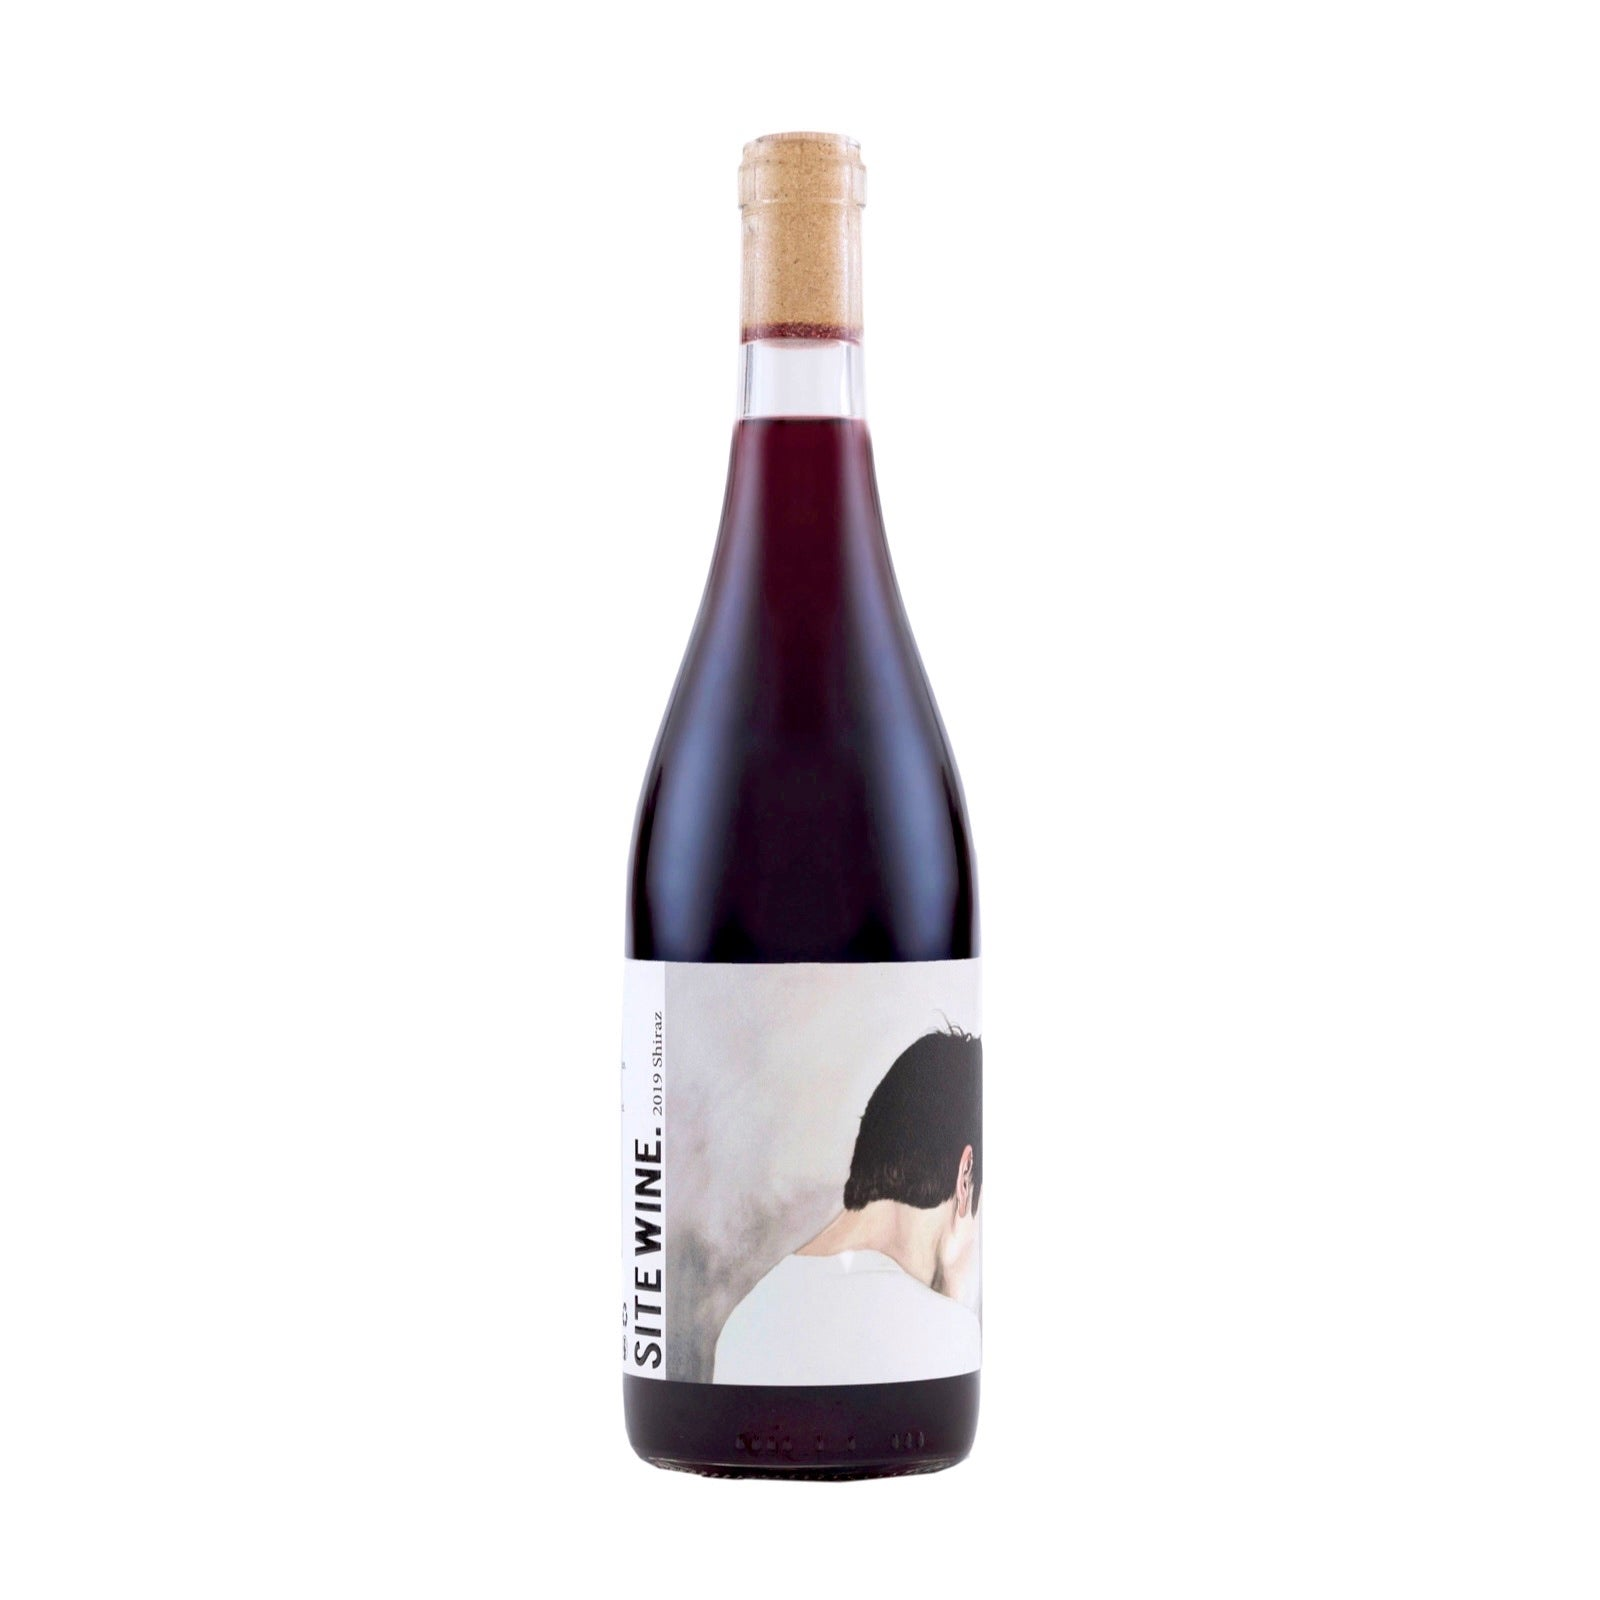 Site Wine Co Shiraz 2019 - Benalla, VIC